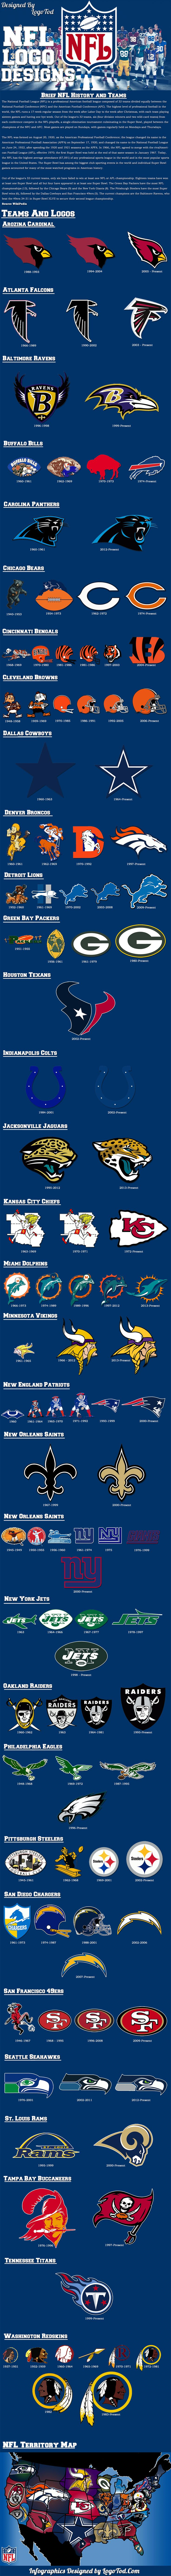 A Brief history of NFL logo design and territories across the US states. From August 20, 1920 when NFL was first established.